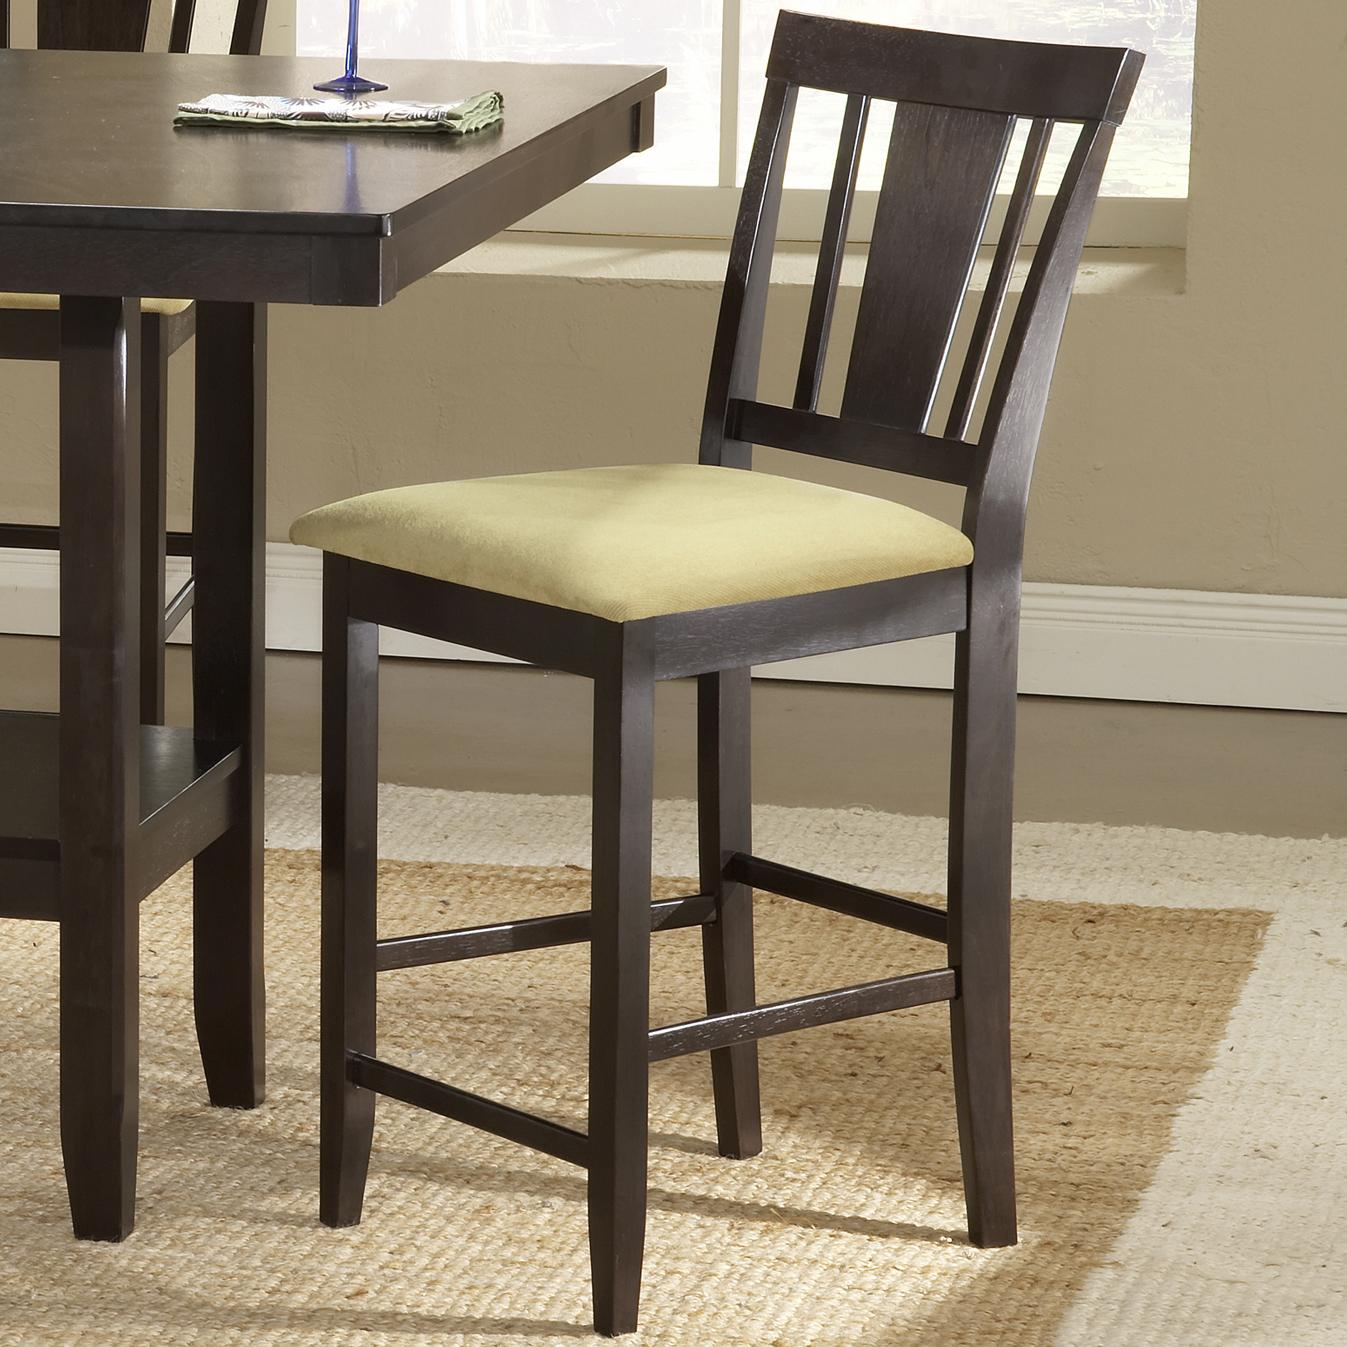 Hillsdale Arcadia Counter Height Stool - Item Number: 4180-822M